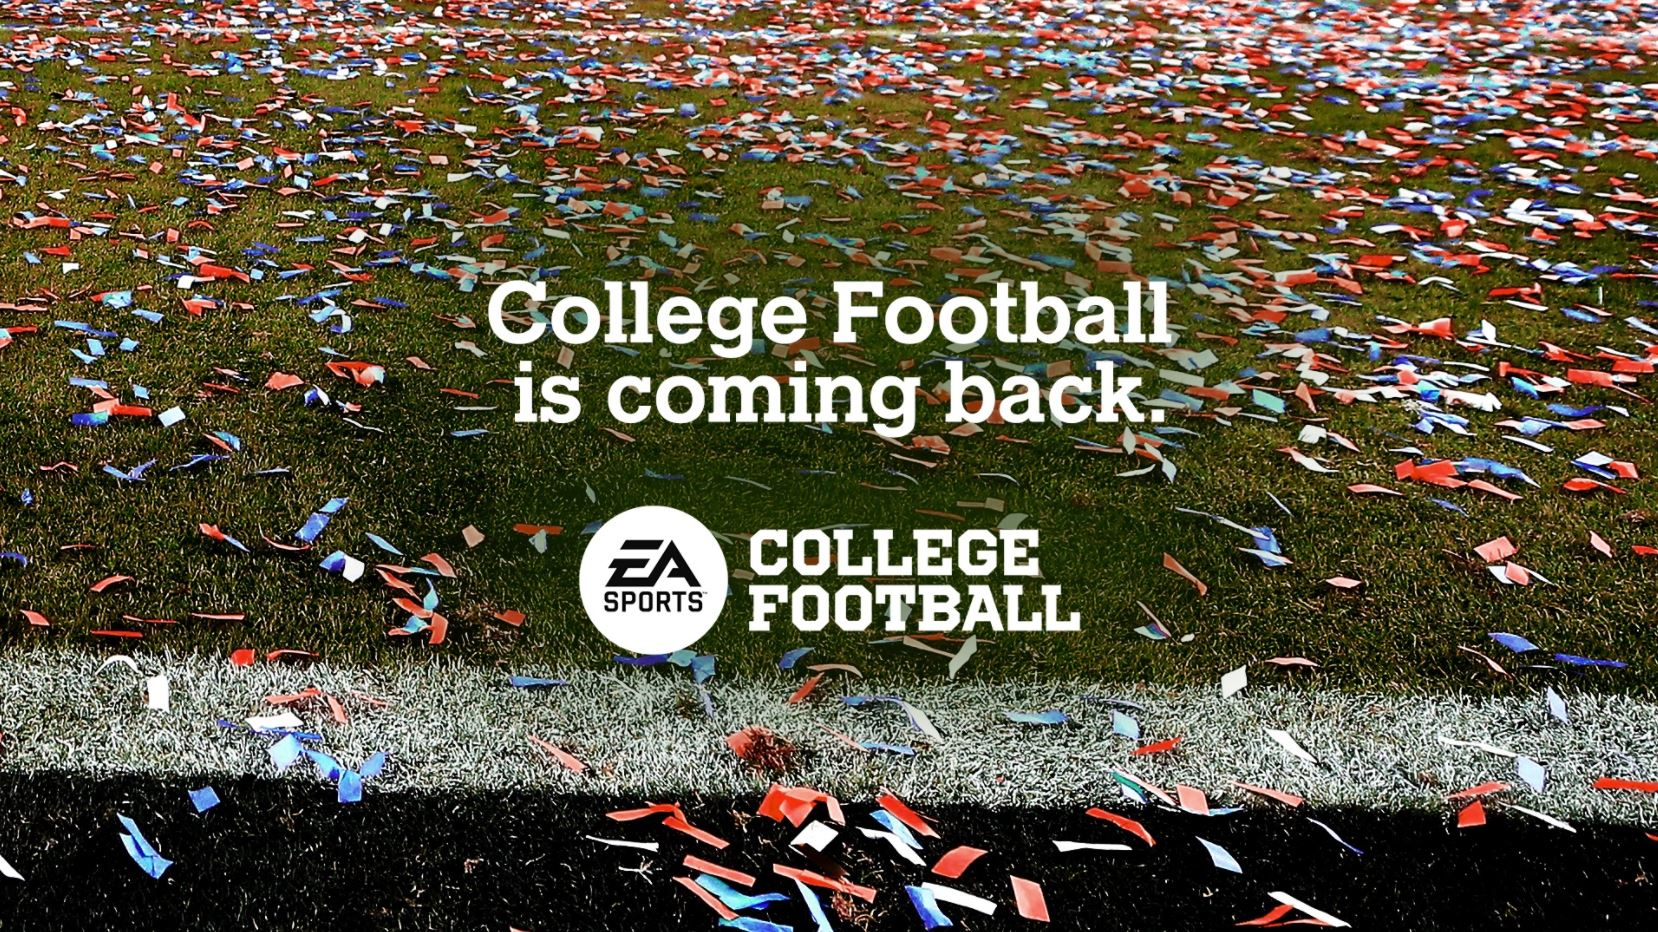 EA Sports to develop new college football video game after long absence